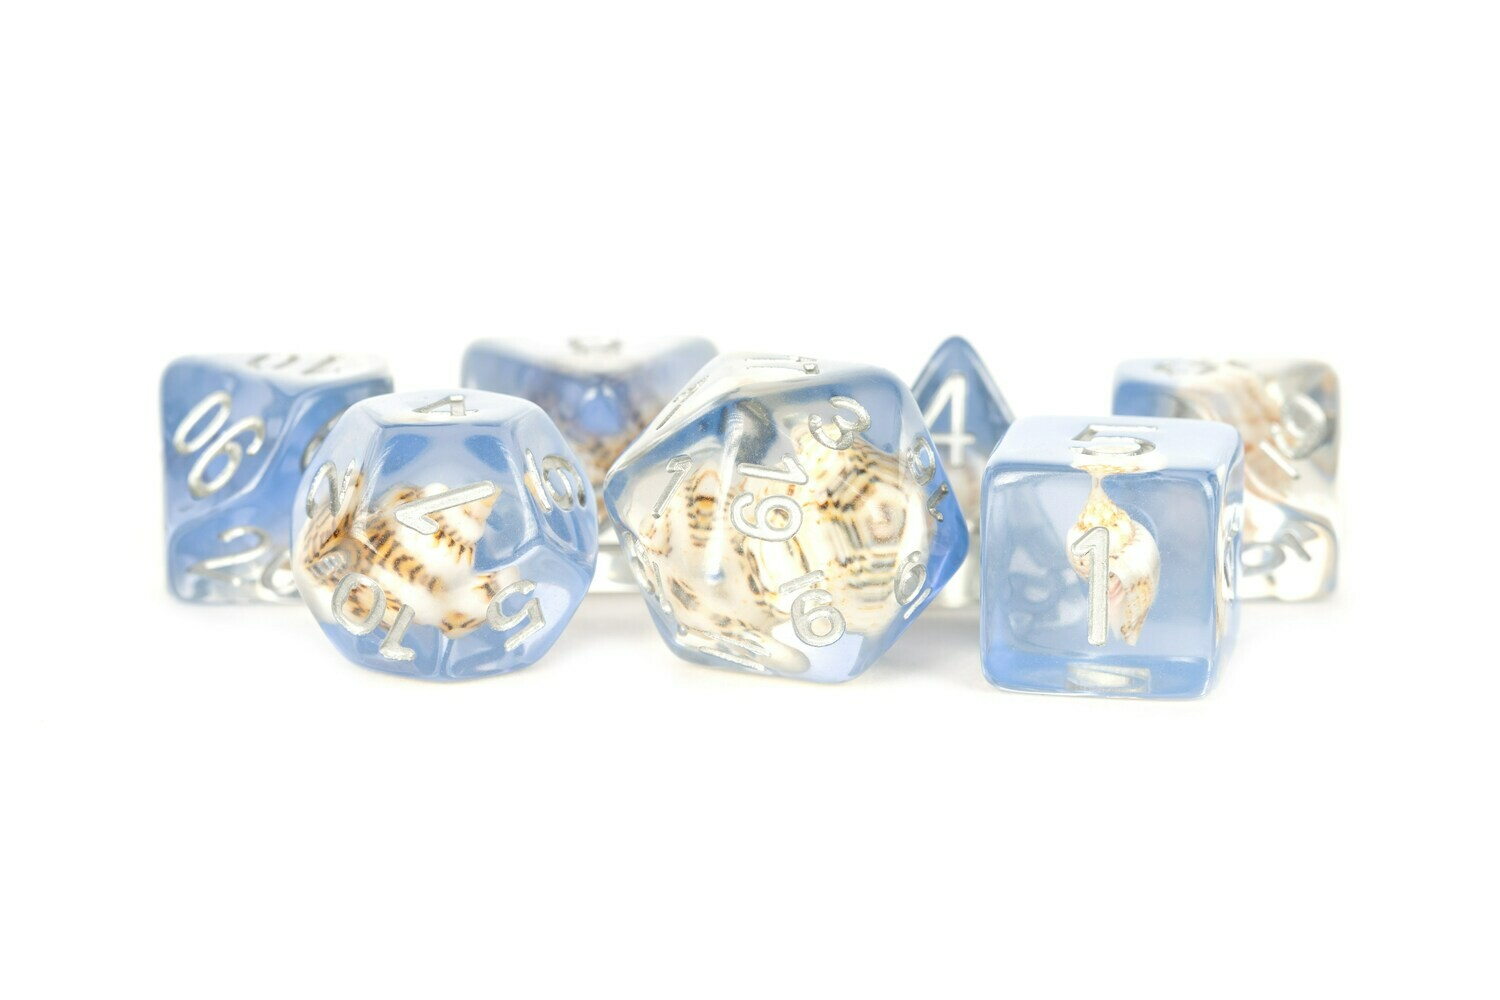 Sea Conch 16mm Resin Poly Dice Set Tabletop RPG CCG Gaming Roleplay